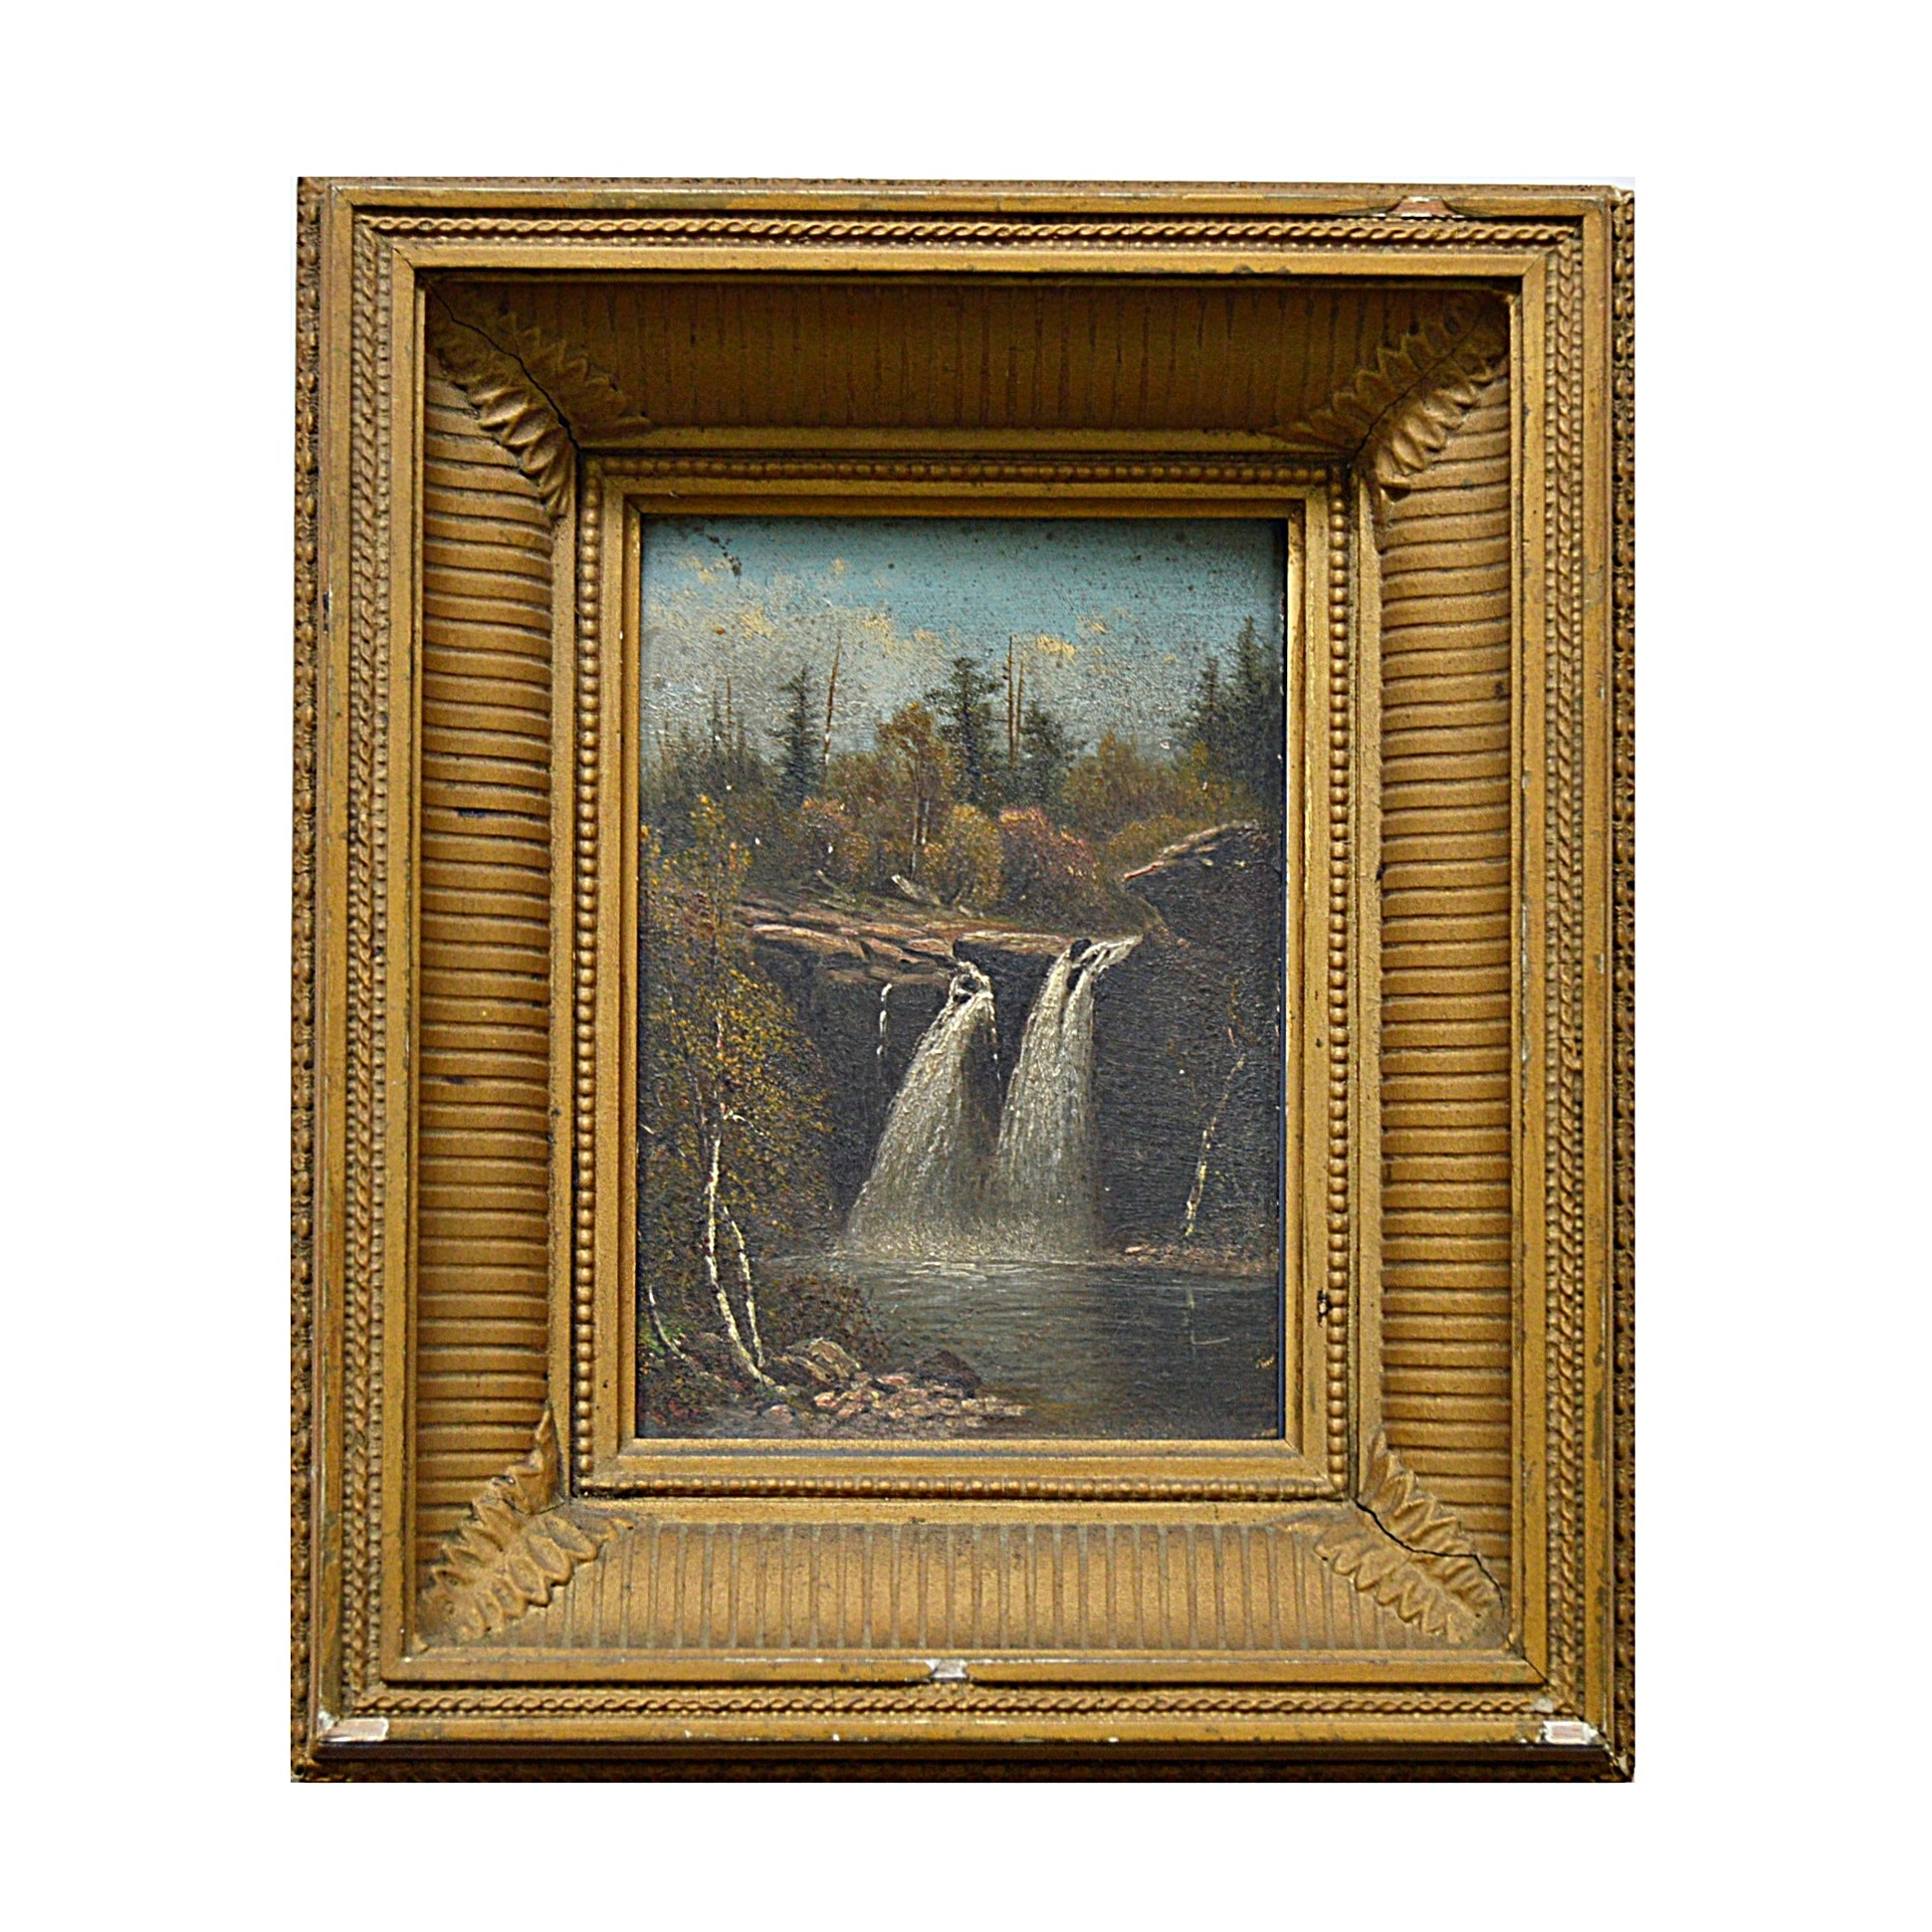 T.C. Lindsay 19th Century Oil on Canvas Landscape with Twin Waterfalls